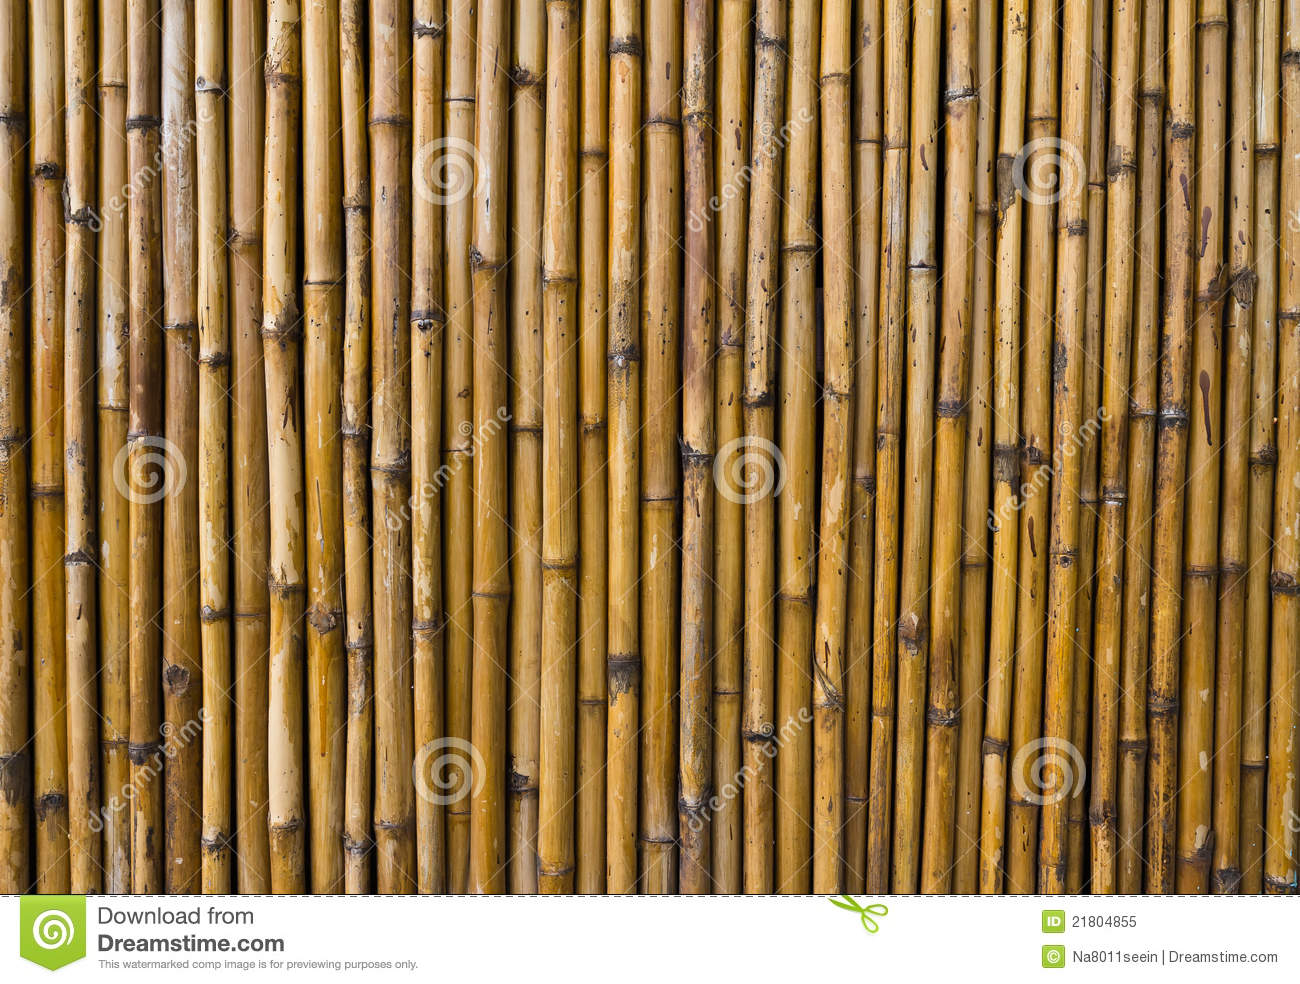 bamboo walls stock image image of tall plant abstract 21804855. Black Bedroom Furniture Sets. Home Design Ideas